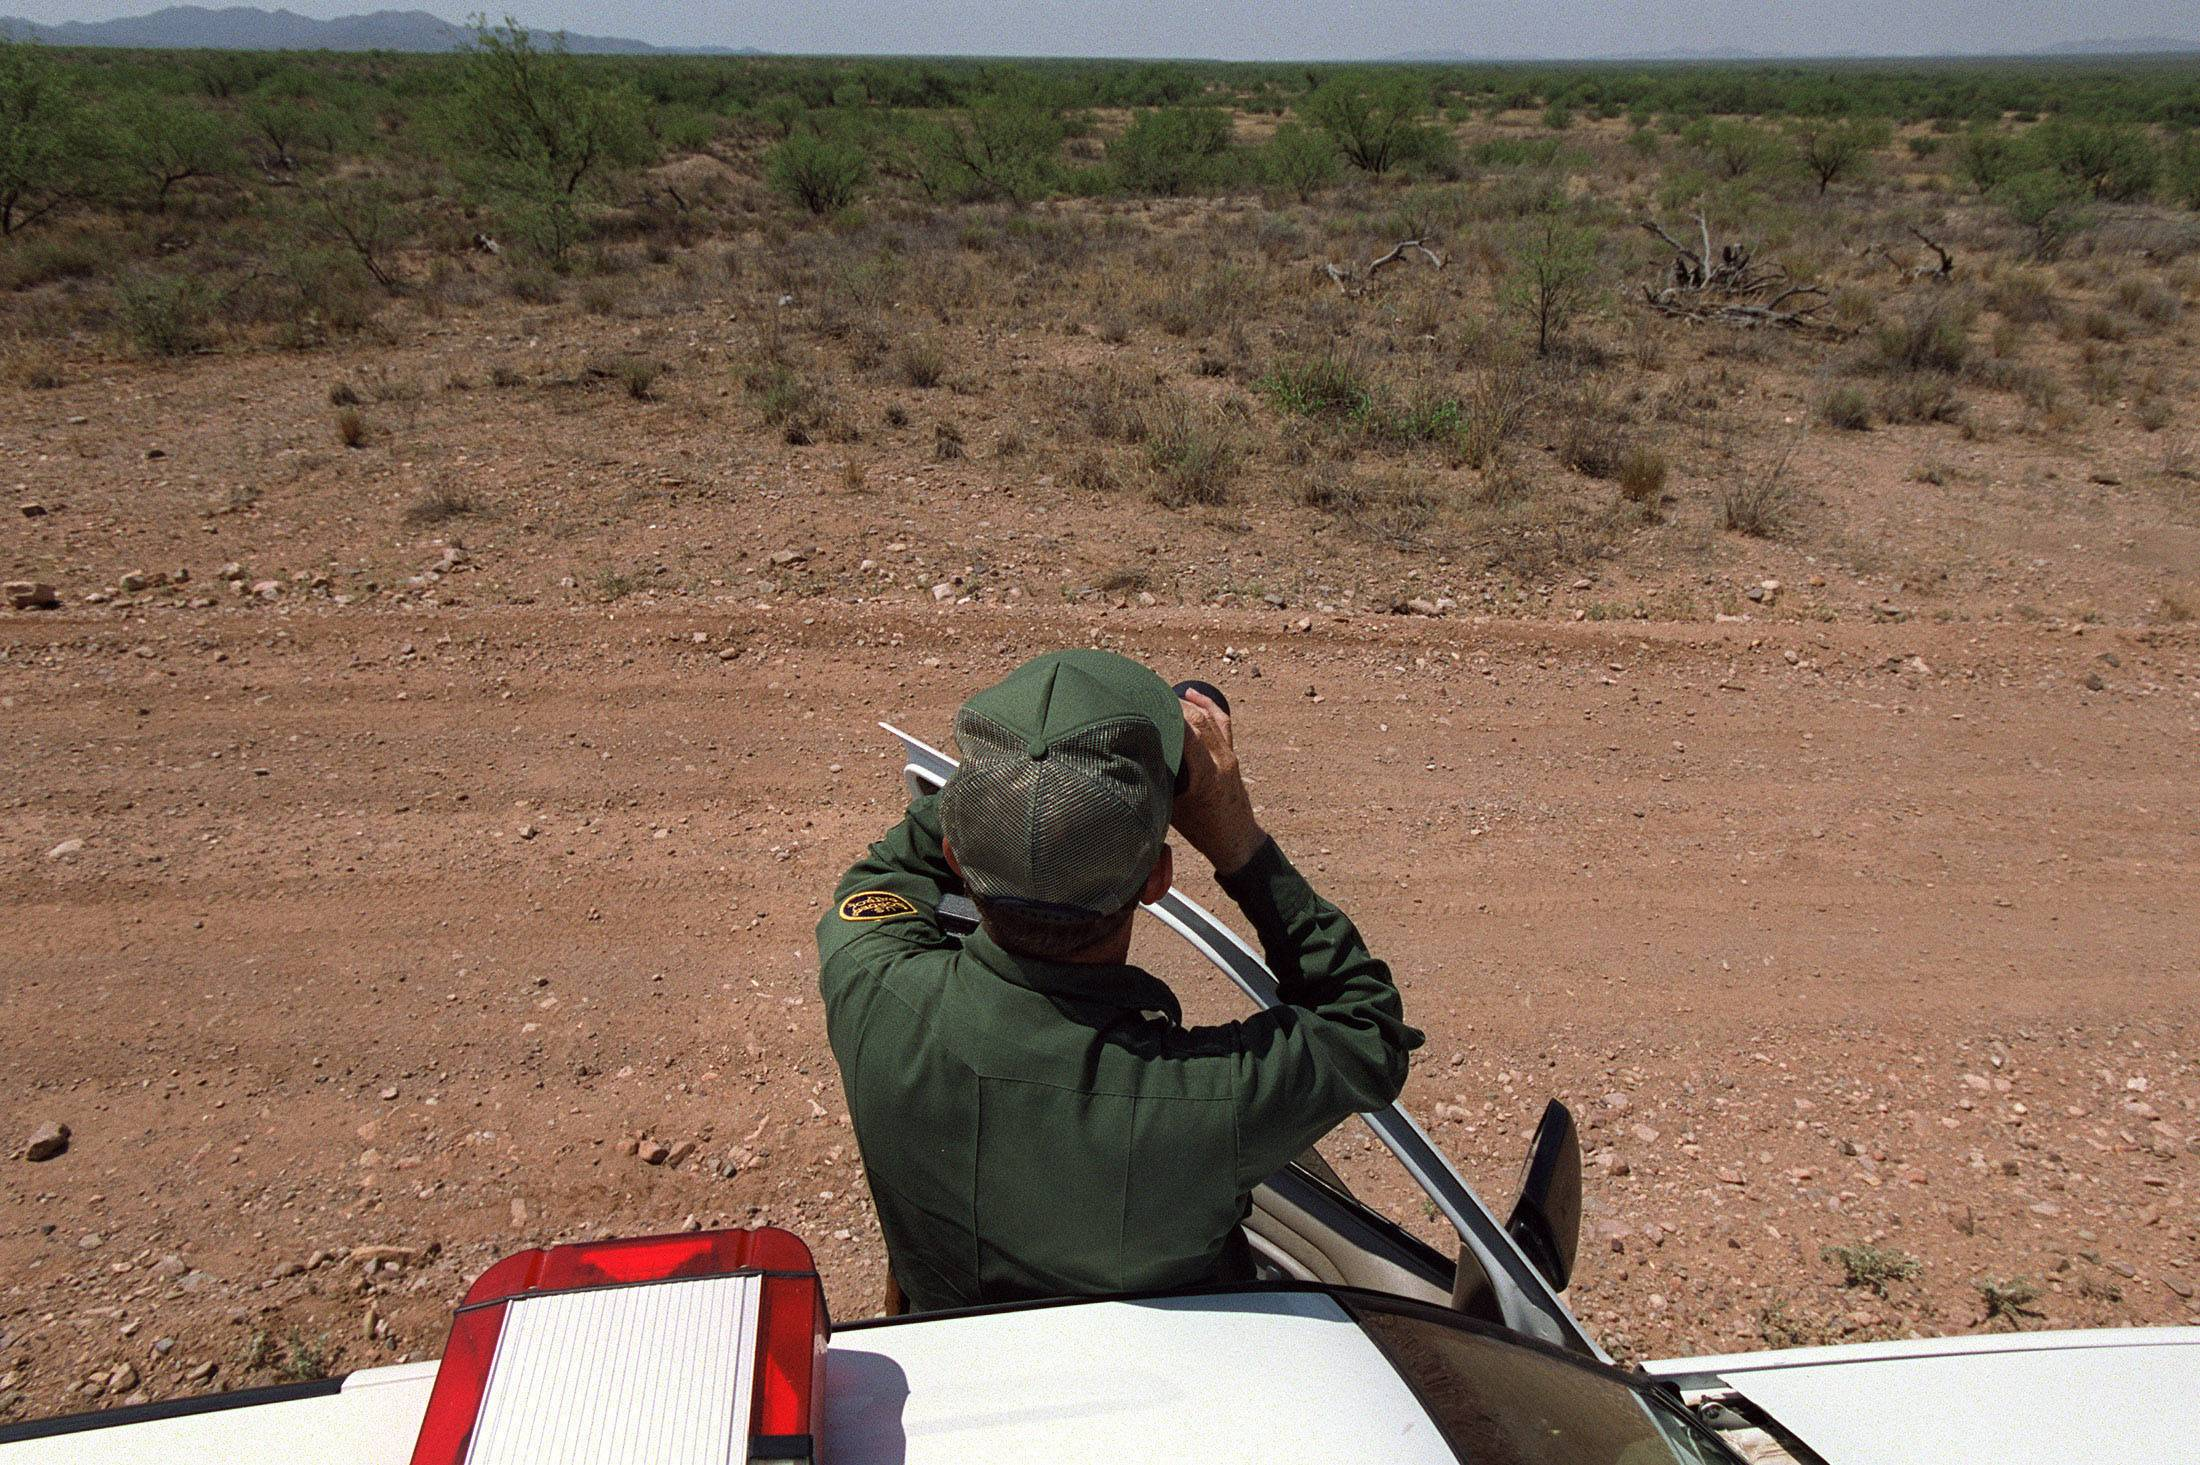 Senior border patrol agent Jorge L. Gonzalez scans the southern horizon of the Sonoran Desert in search of illegal immigrants who were spotted nearby. Gonzalez and other agents admit they are outmatched trying to spot every illegal immigrant in such a wide expanse of the Mexico/US border.